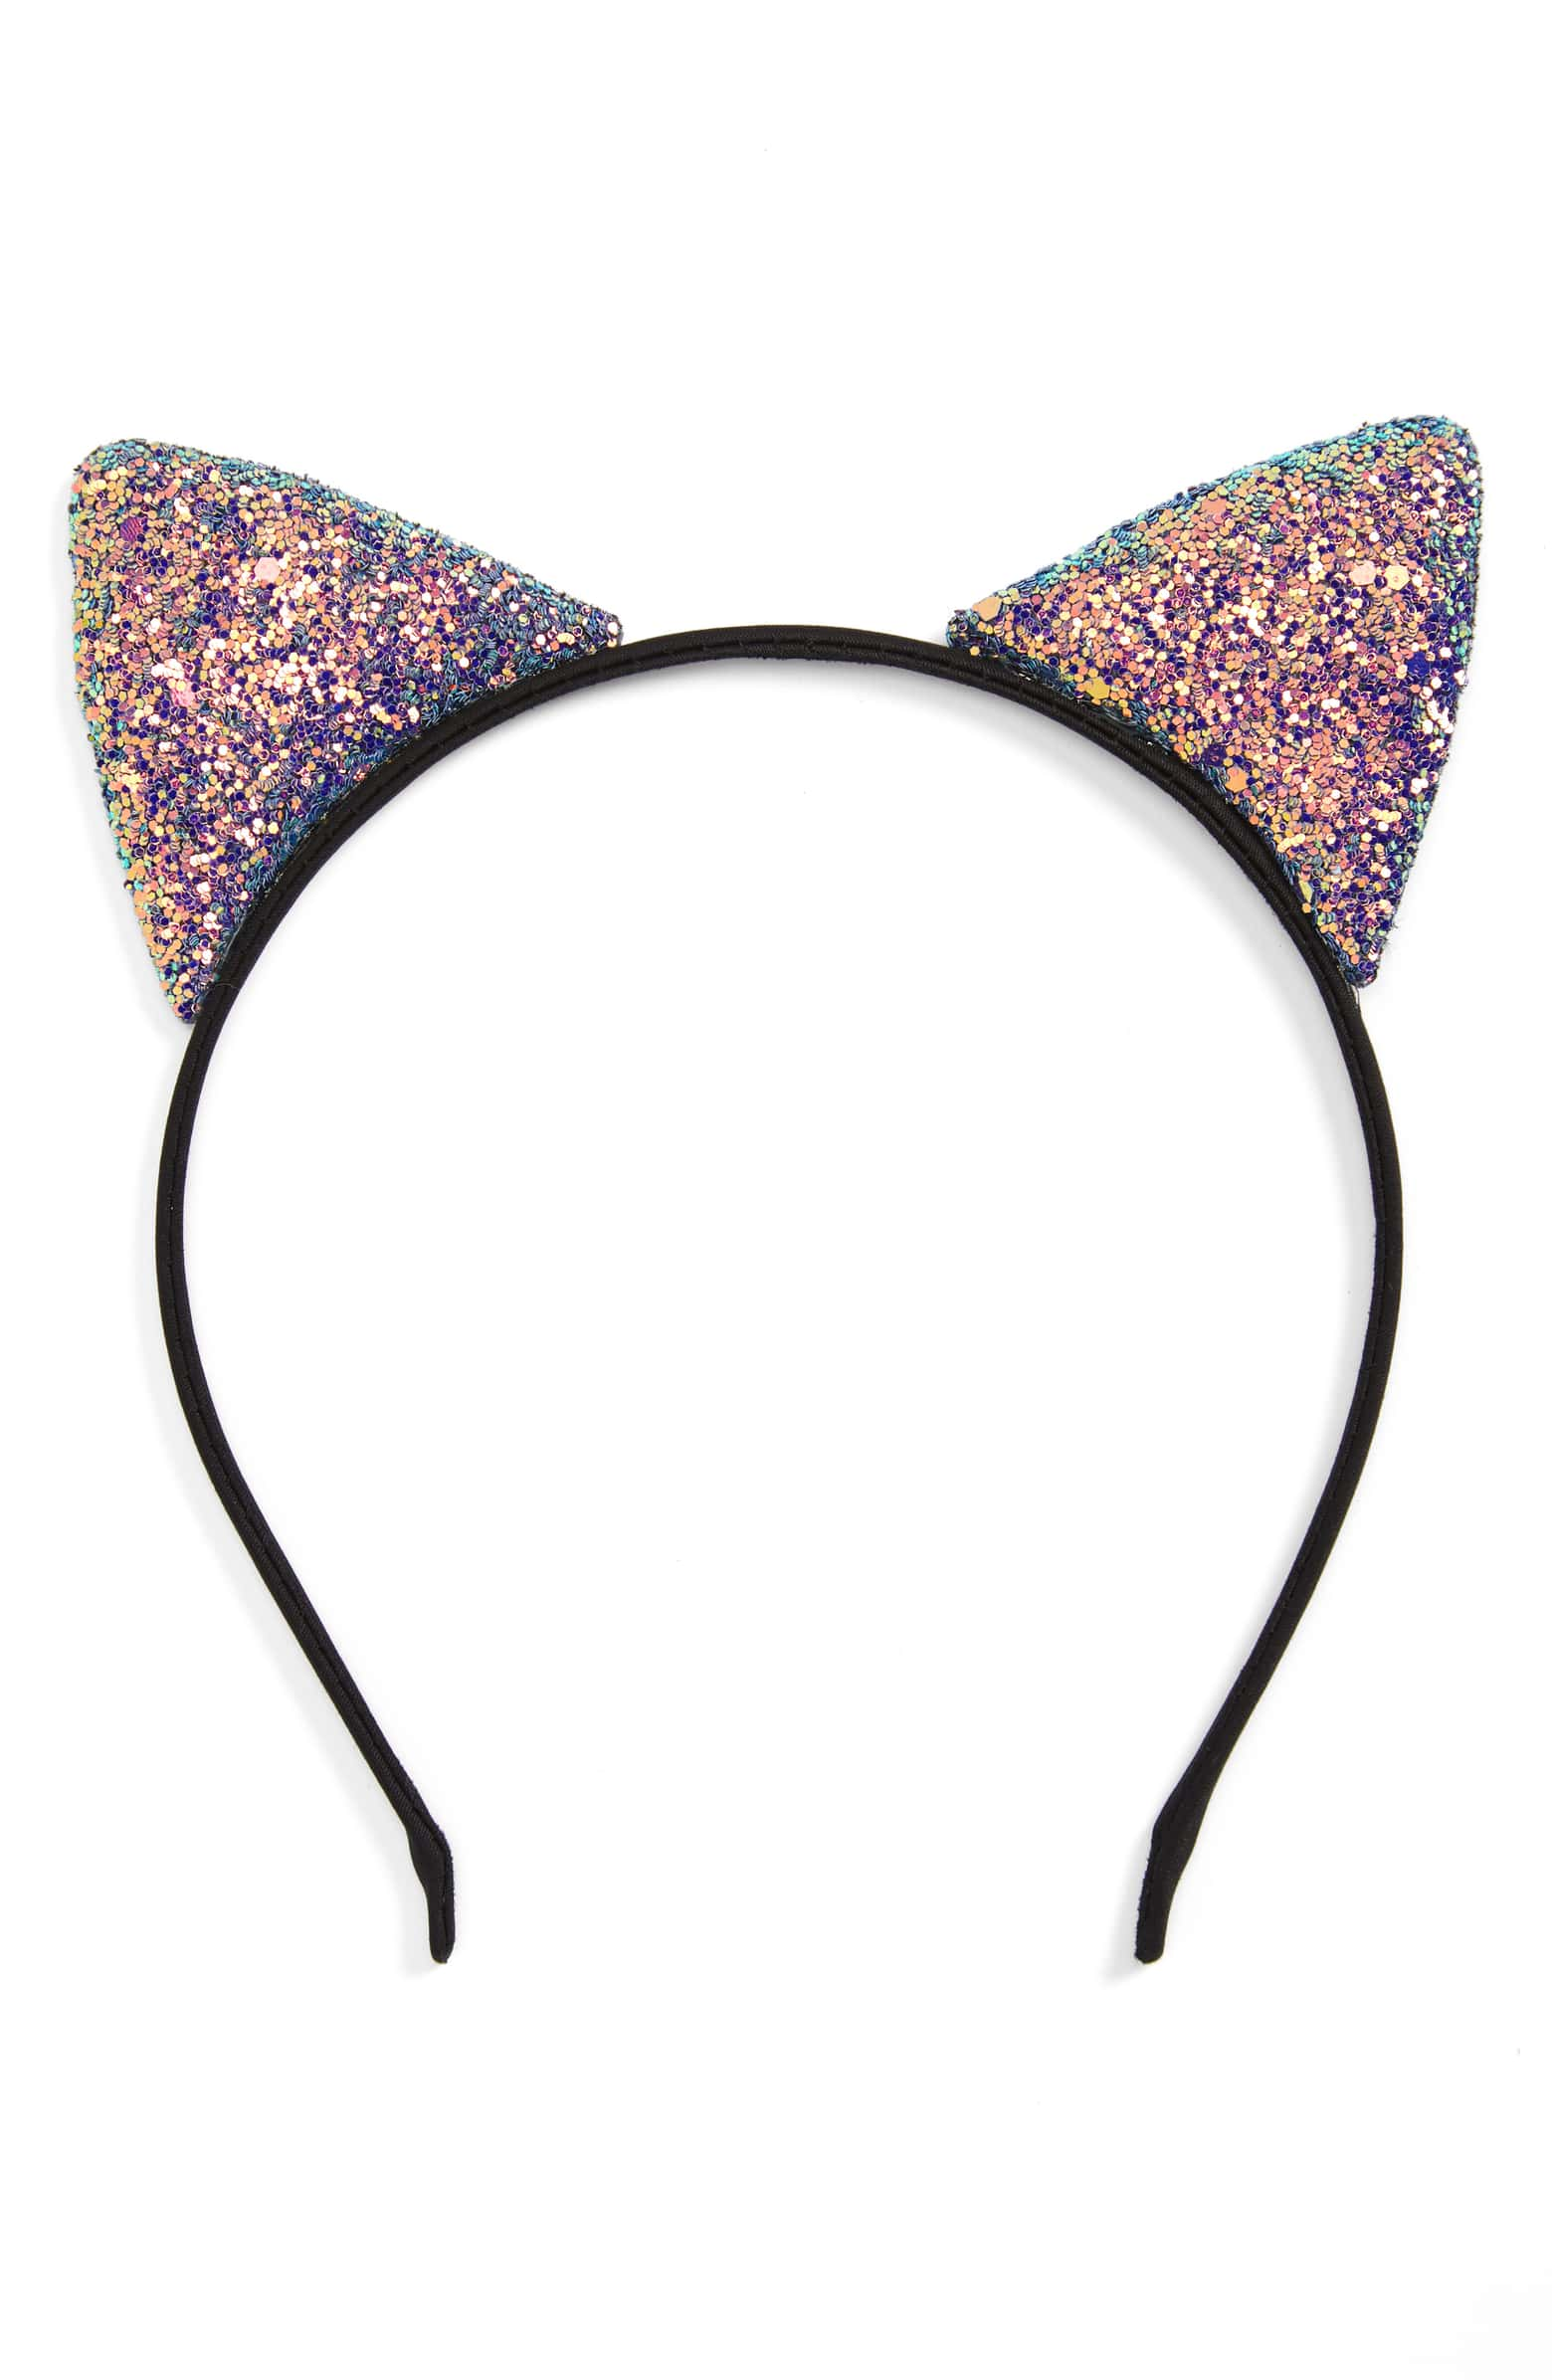 Iridescent Cat Ears